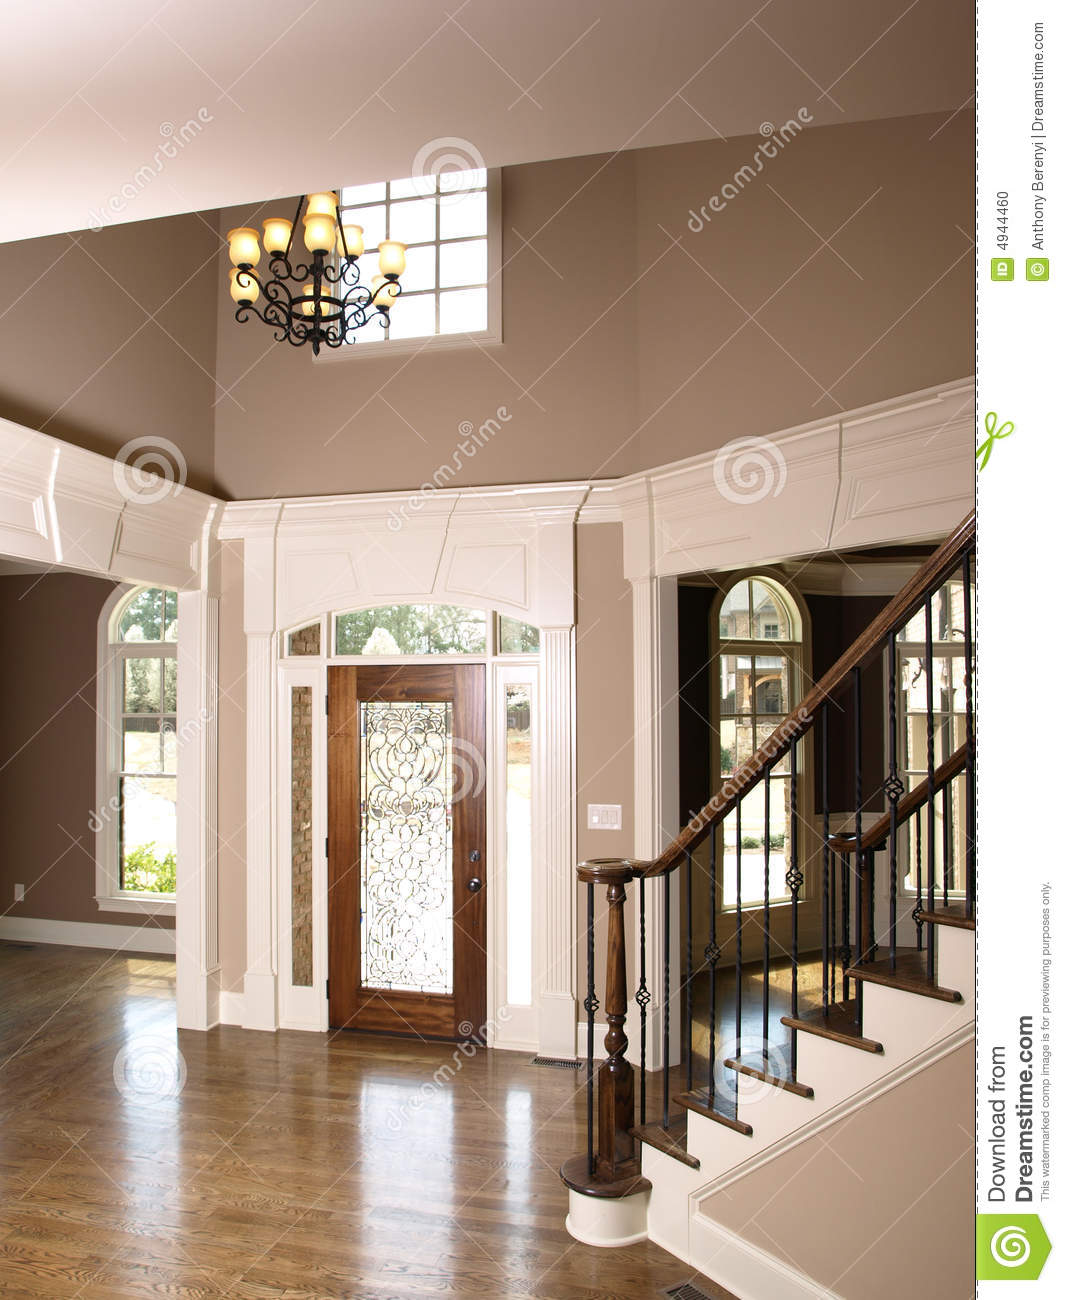 Foyer Clipart : Luxury home interior foyer stained glass door royalty free